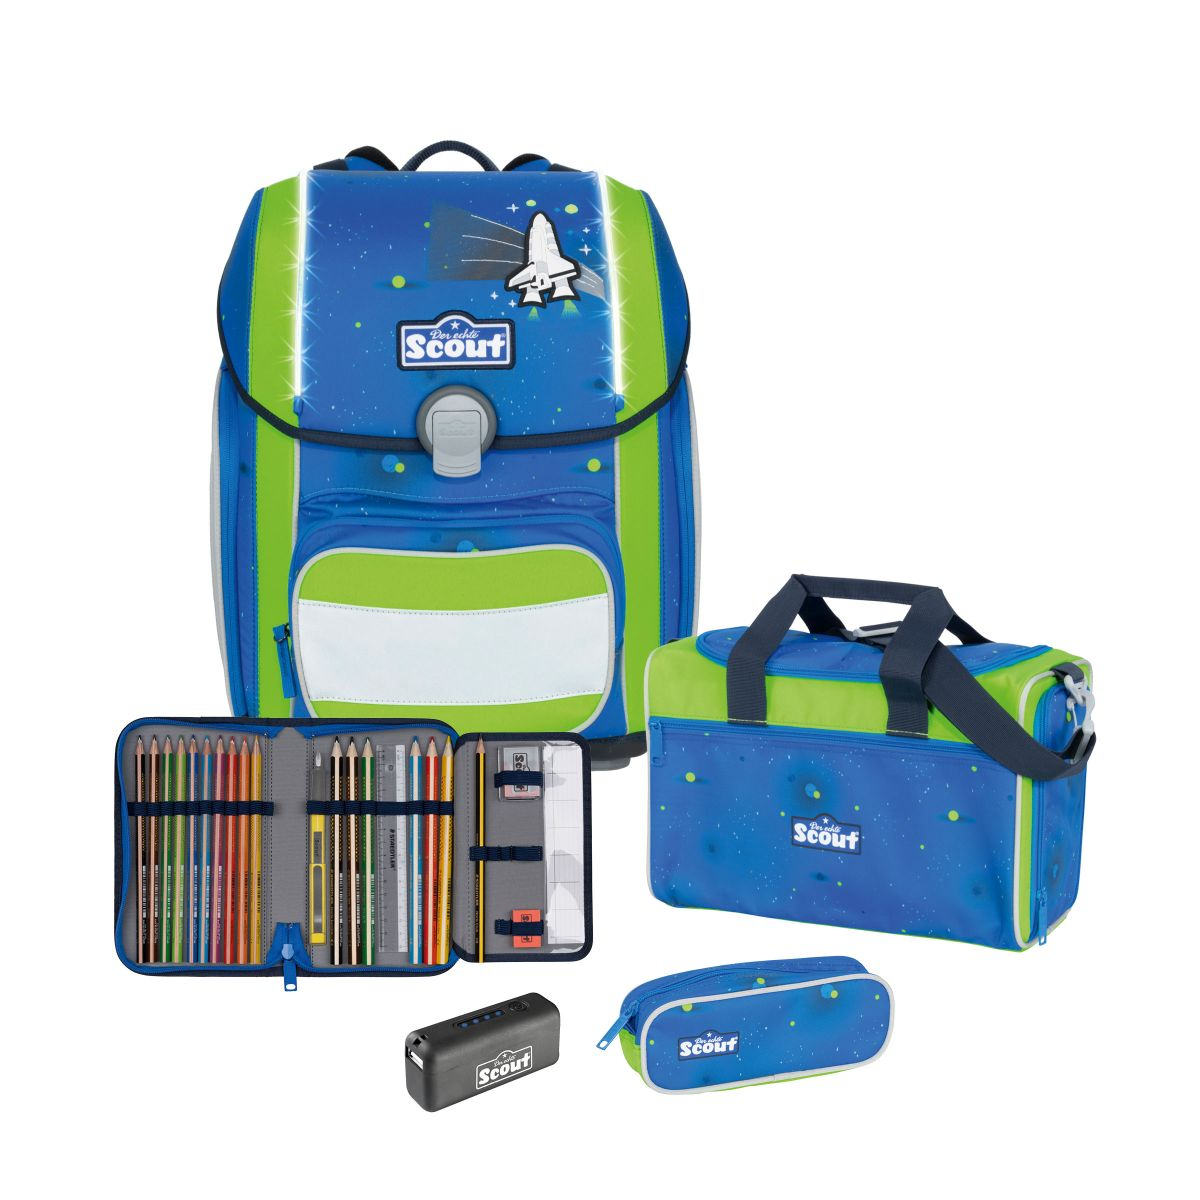 4-tlg. Schulranzenset Limitierte Auflage Genius inkl. Safety Light 19 Liter - Blue Space